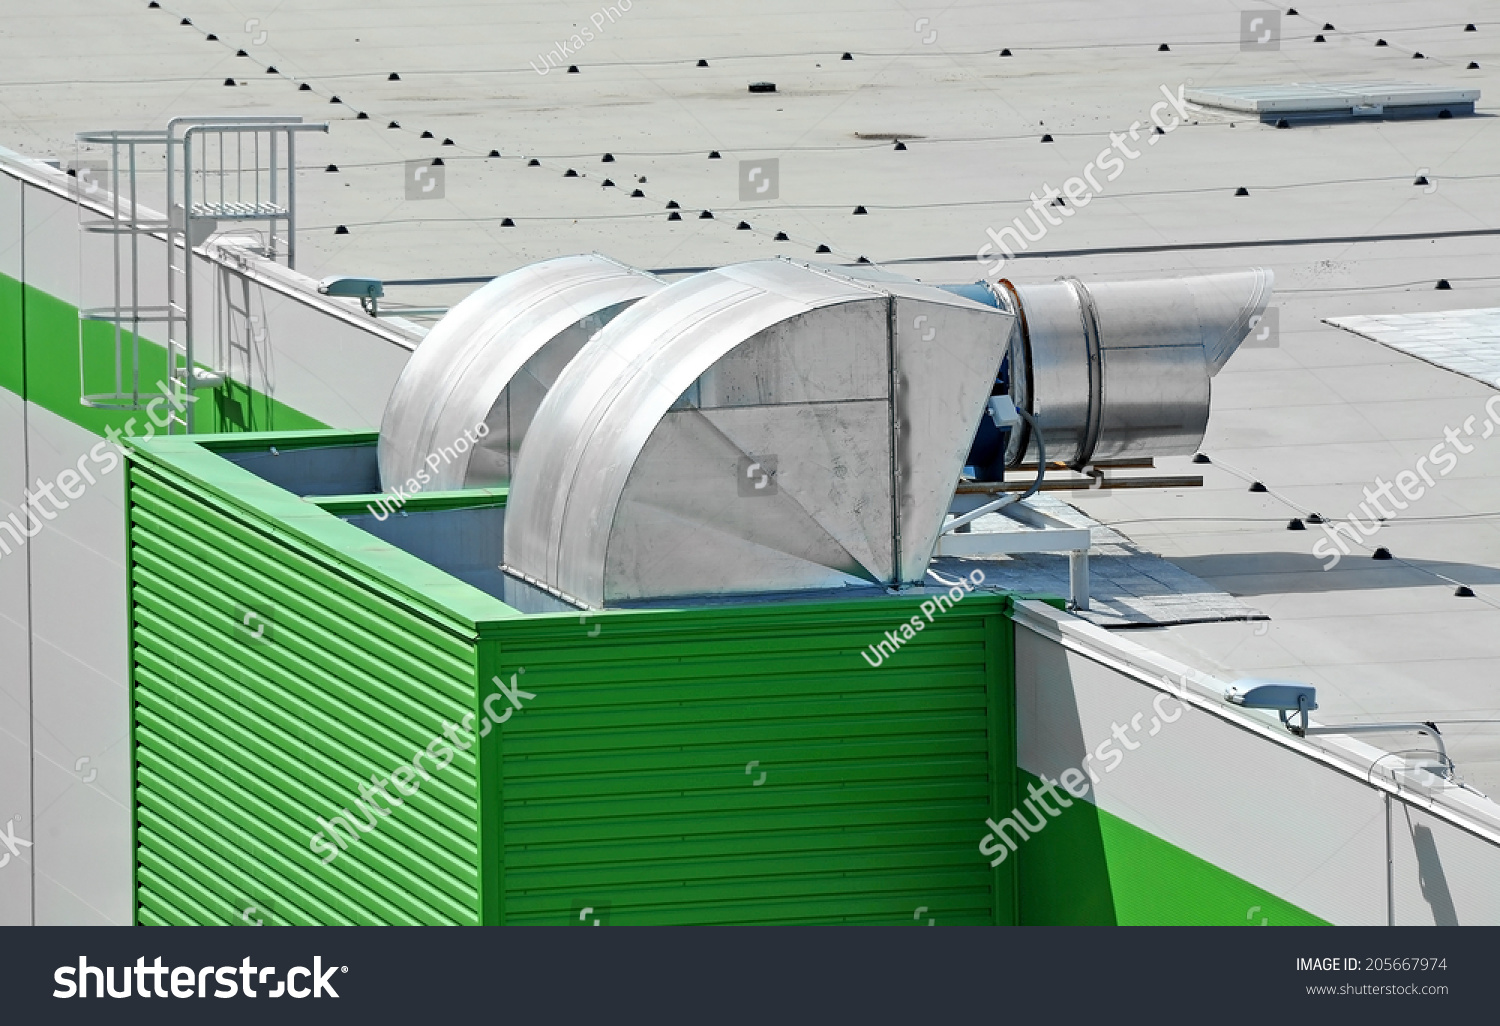 Industrial Air Ventilator : Industrial air conditioning and ventilation systems on a